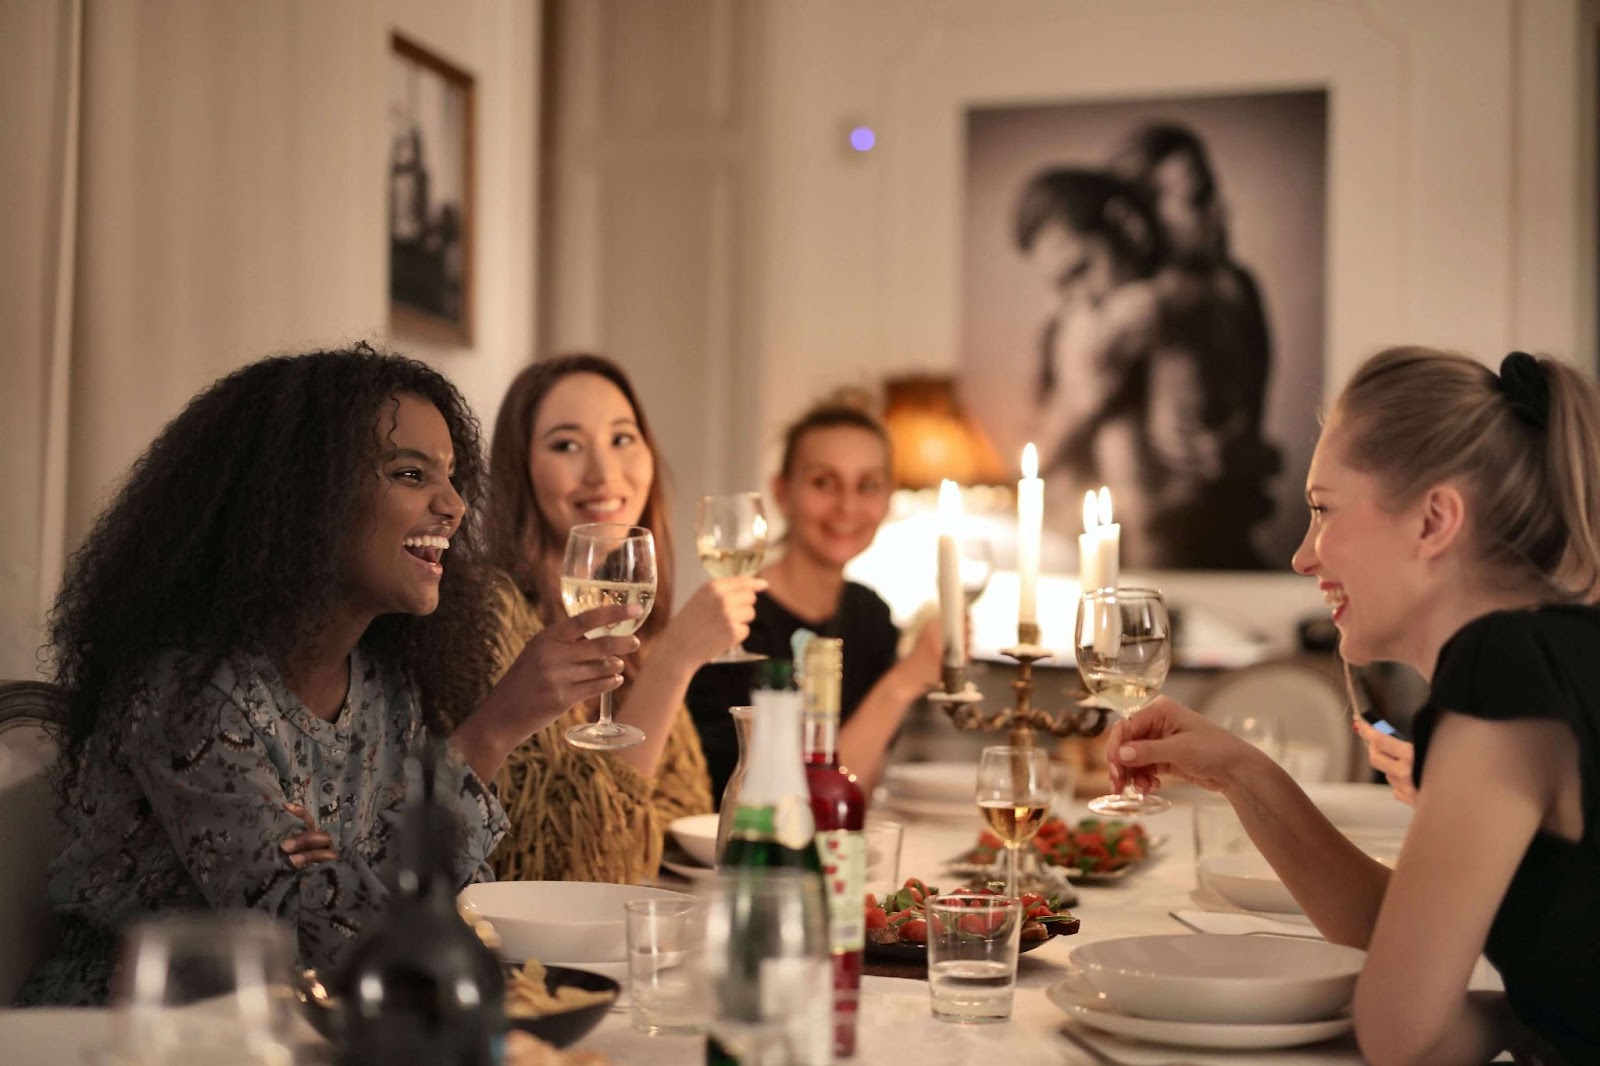 A group of women enjoying dinner together